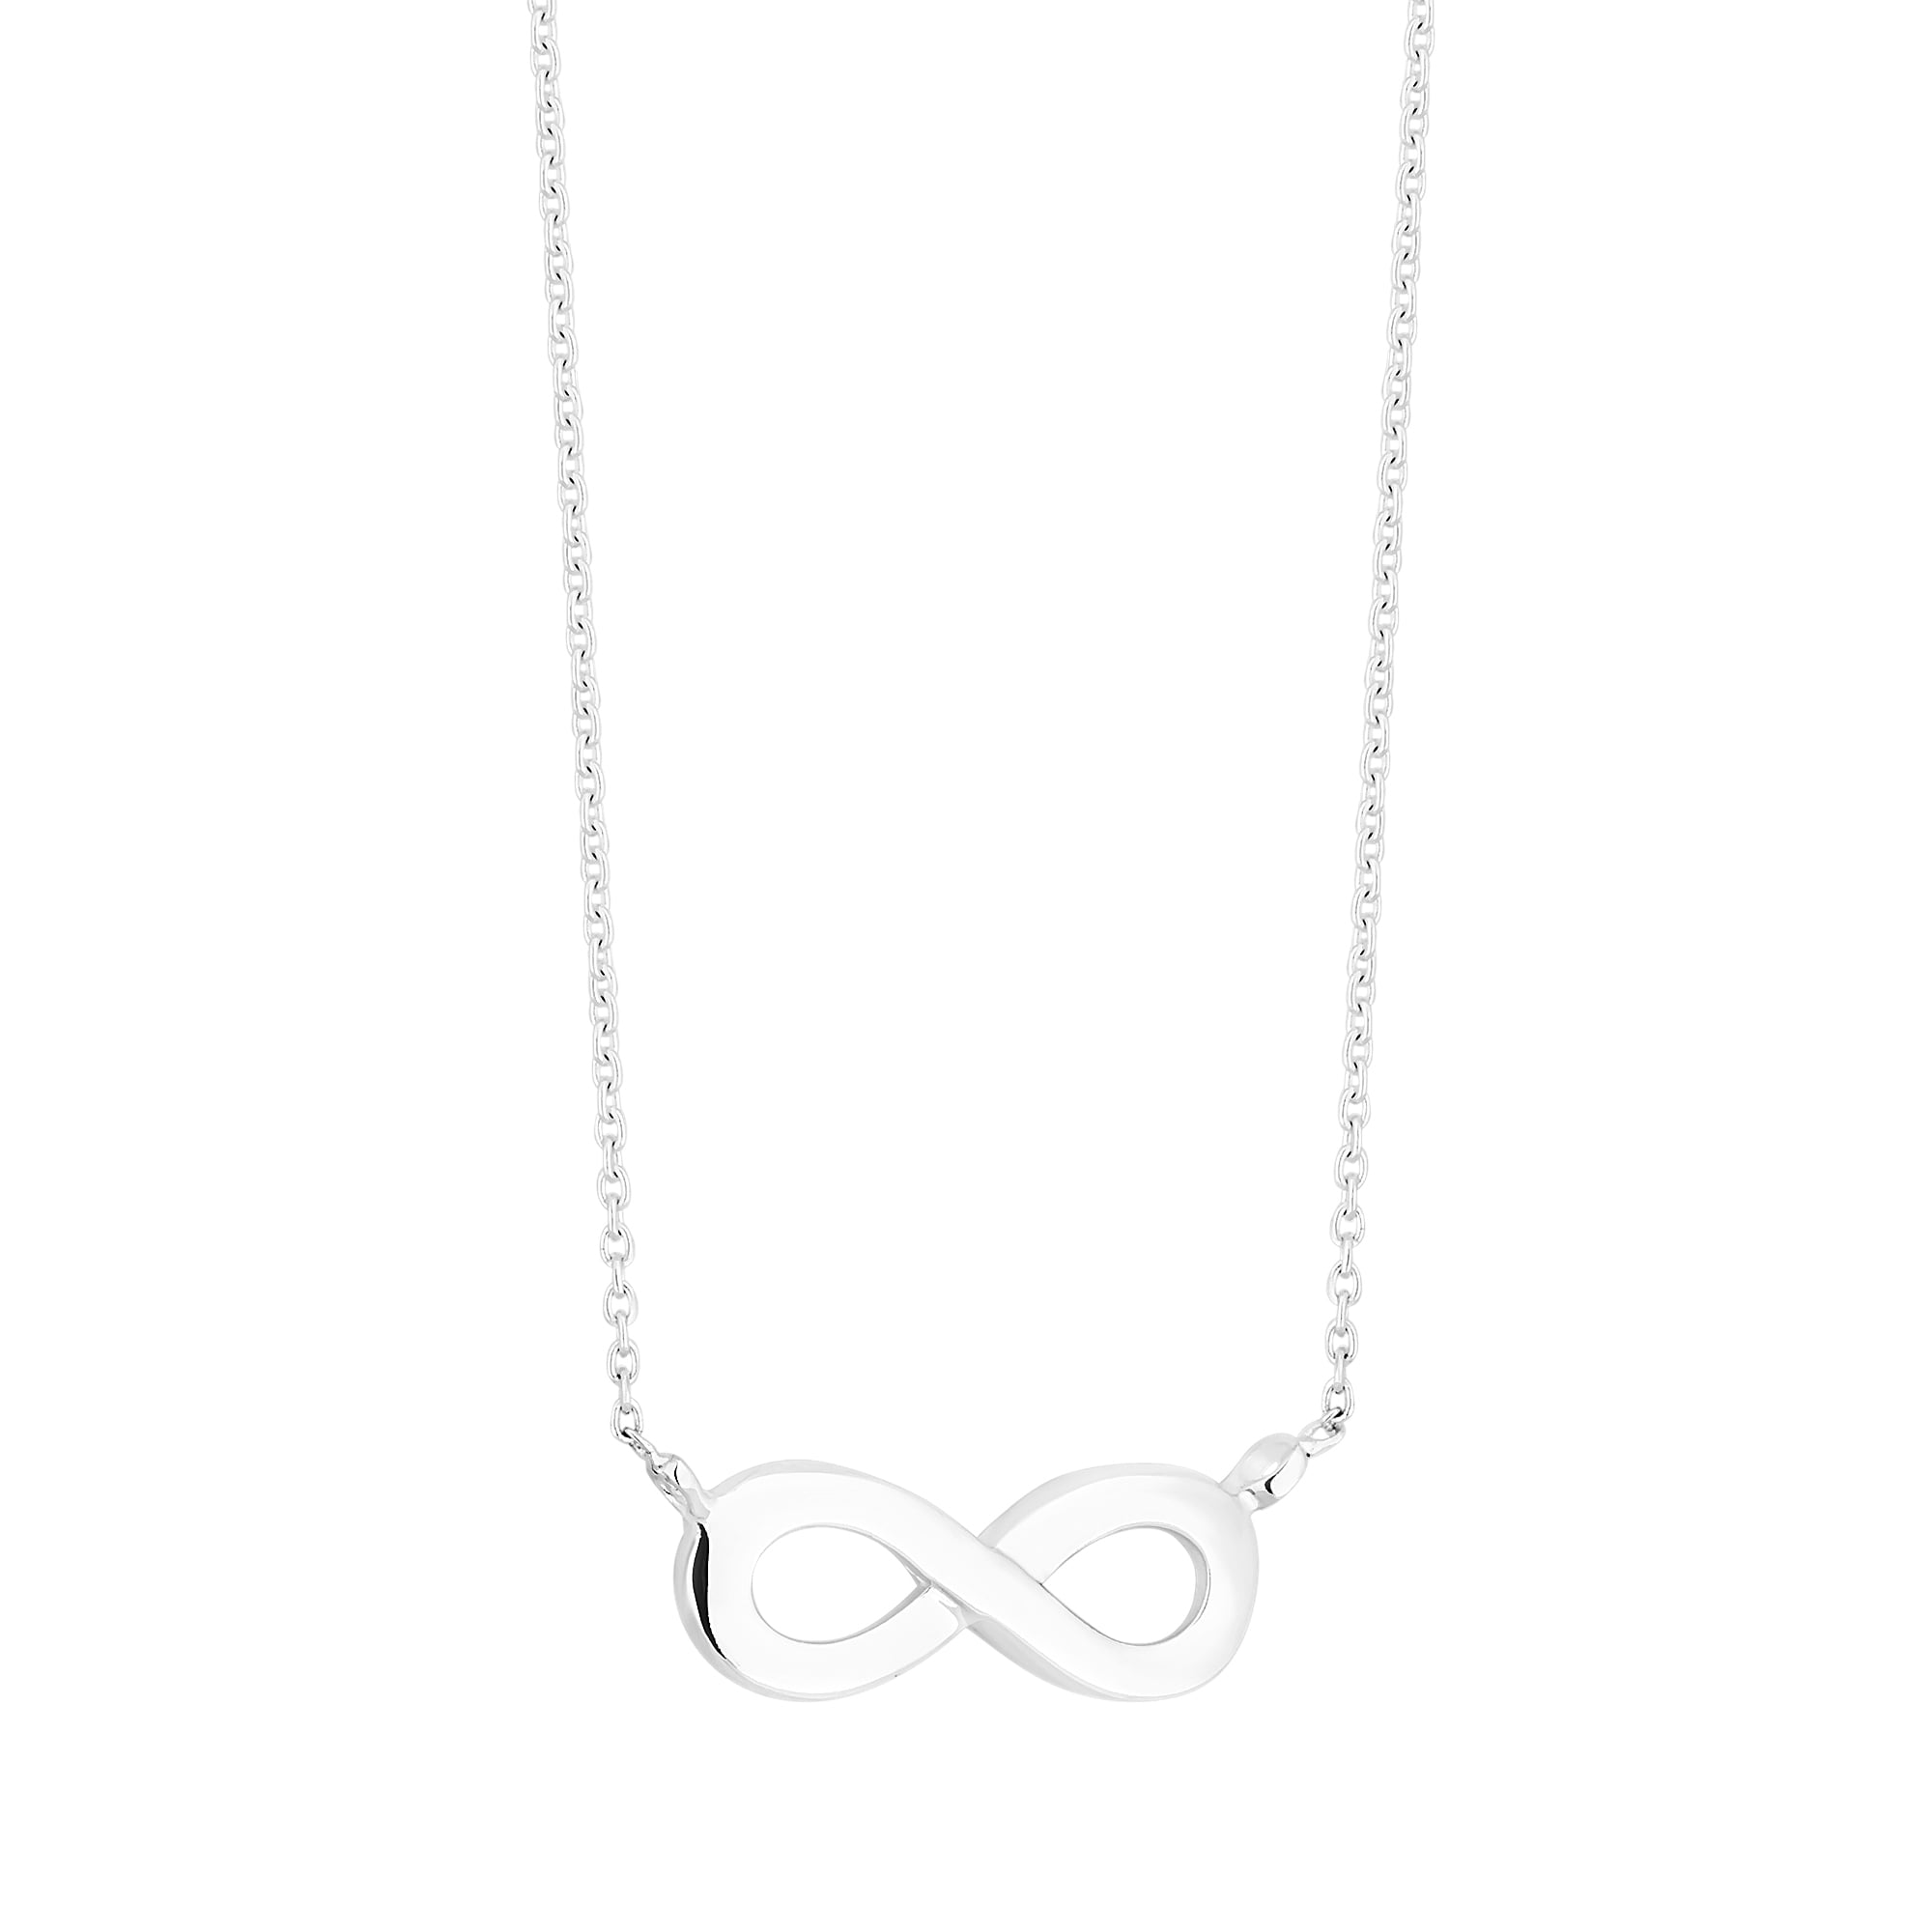 zirconia necklaces with zoom simply necklace pave suspended infinity silver pendant cubic jewellery sterling